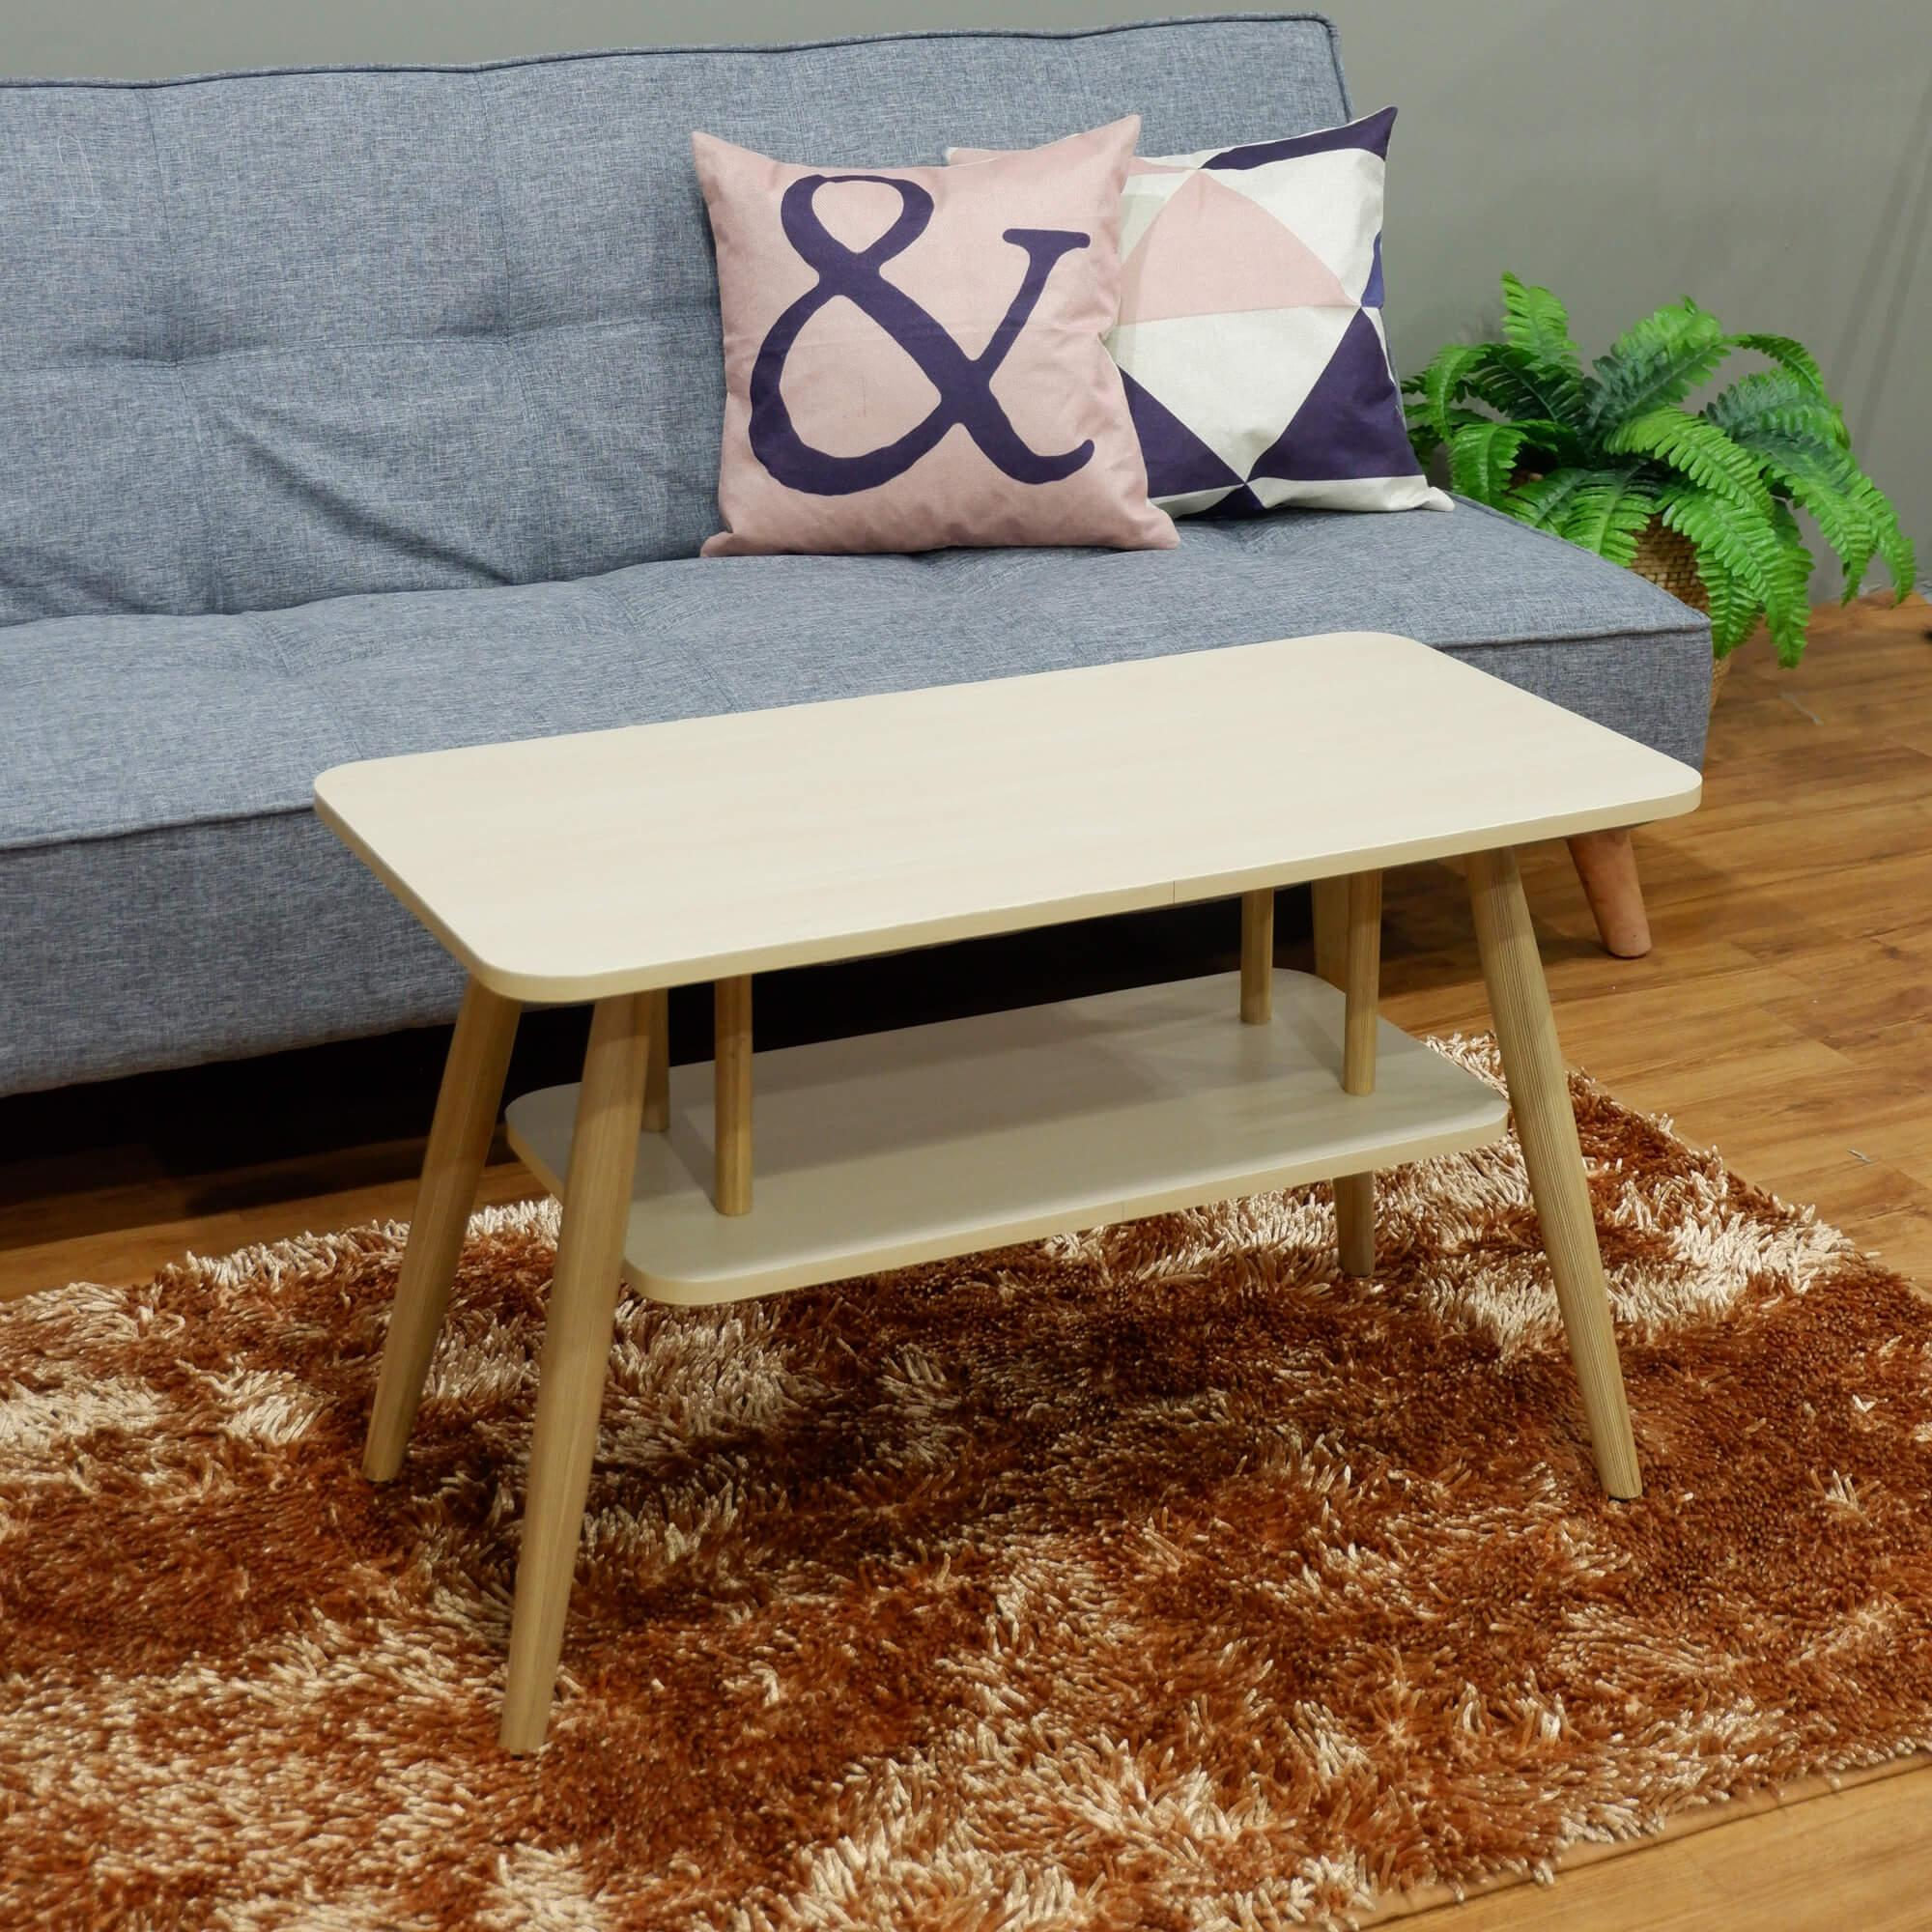 The Olive House - Helsinki Coffee Table 790